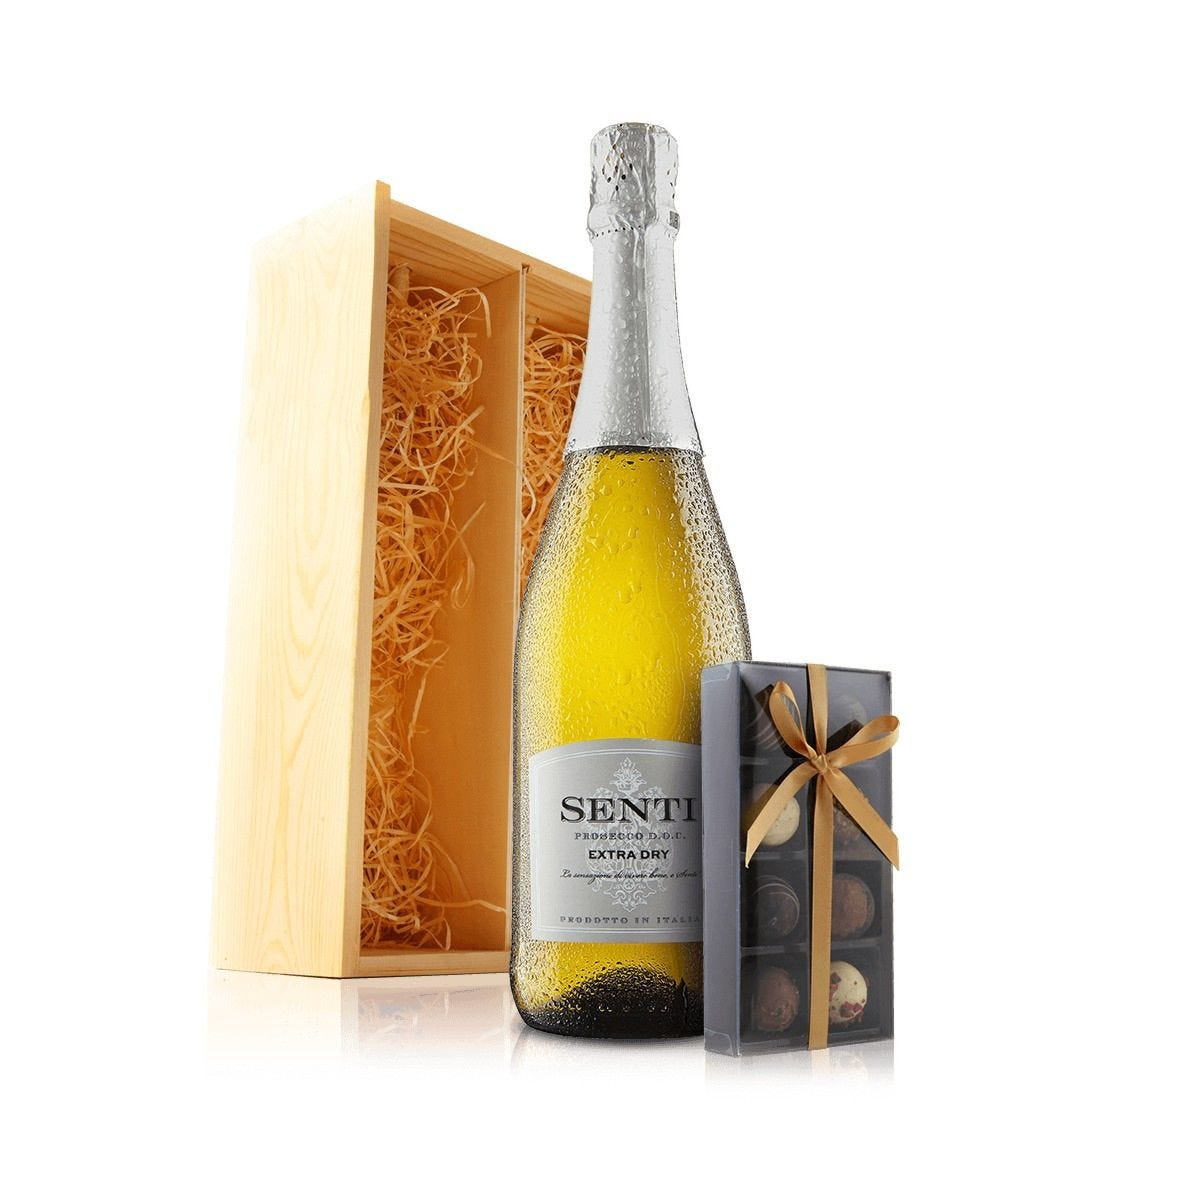 Virgin Wines Prosecco and Chocolates in Wooden Gift Box